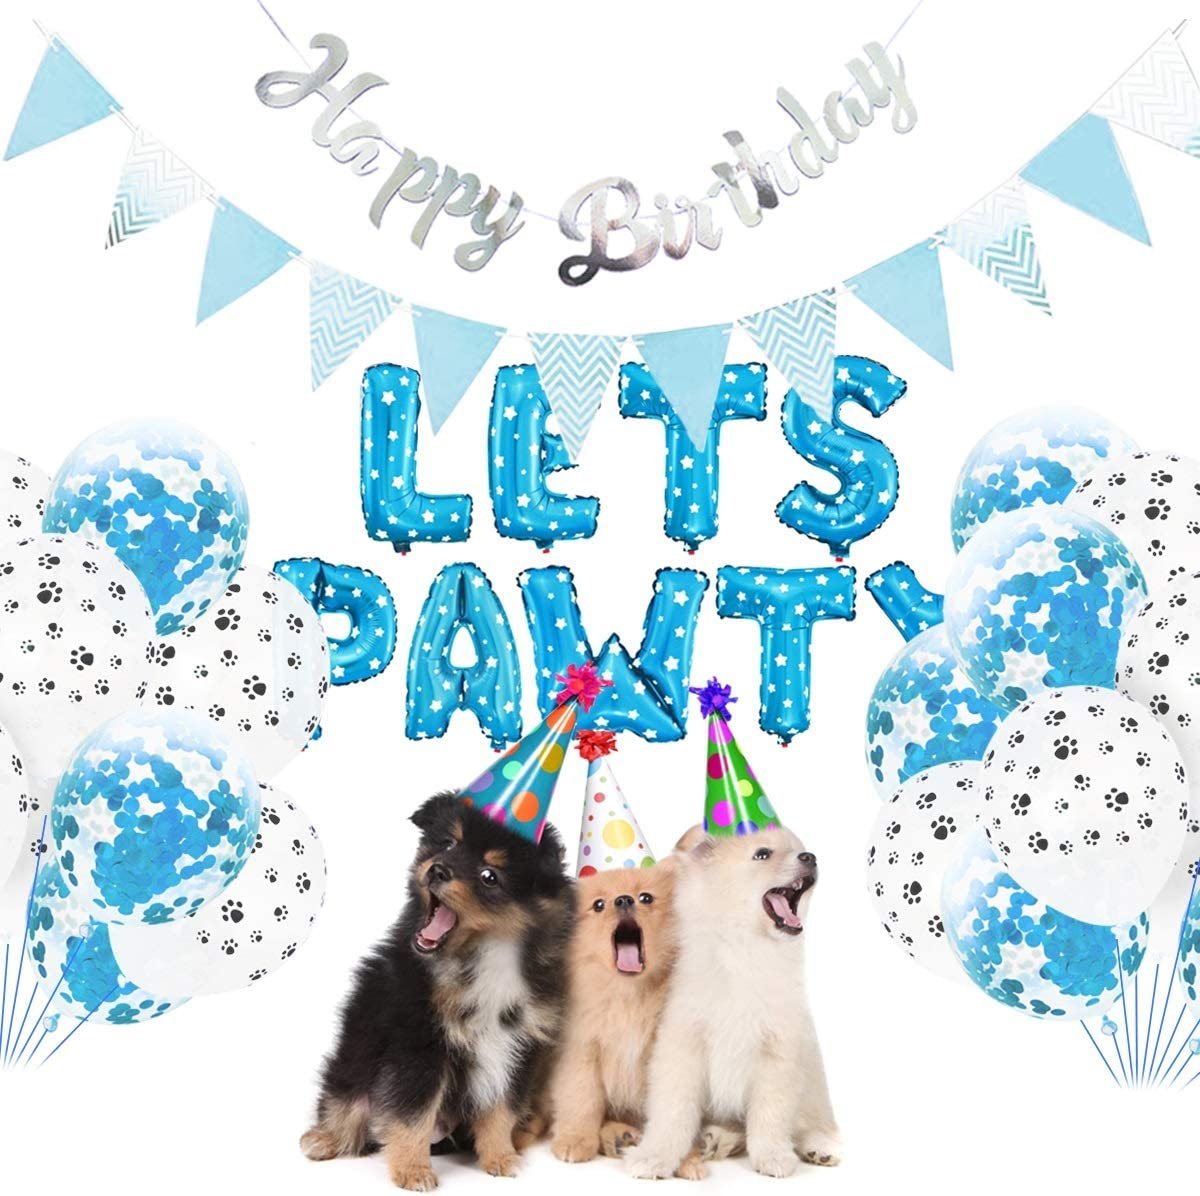 Haokaini Lets PAWTY Decor for Dog Cat 23Pcs//Set Party Decor Kits Balloons Birthday Banners Party Supplies for Dog Cat Pets Supplies